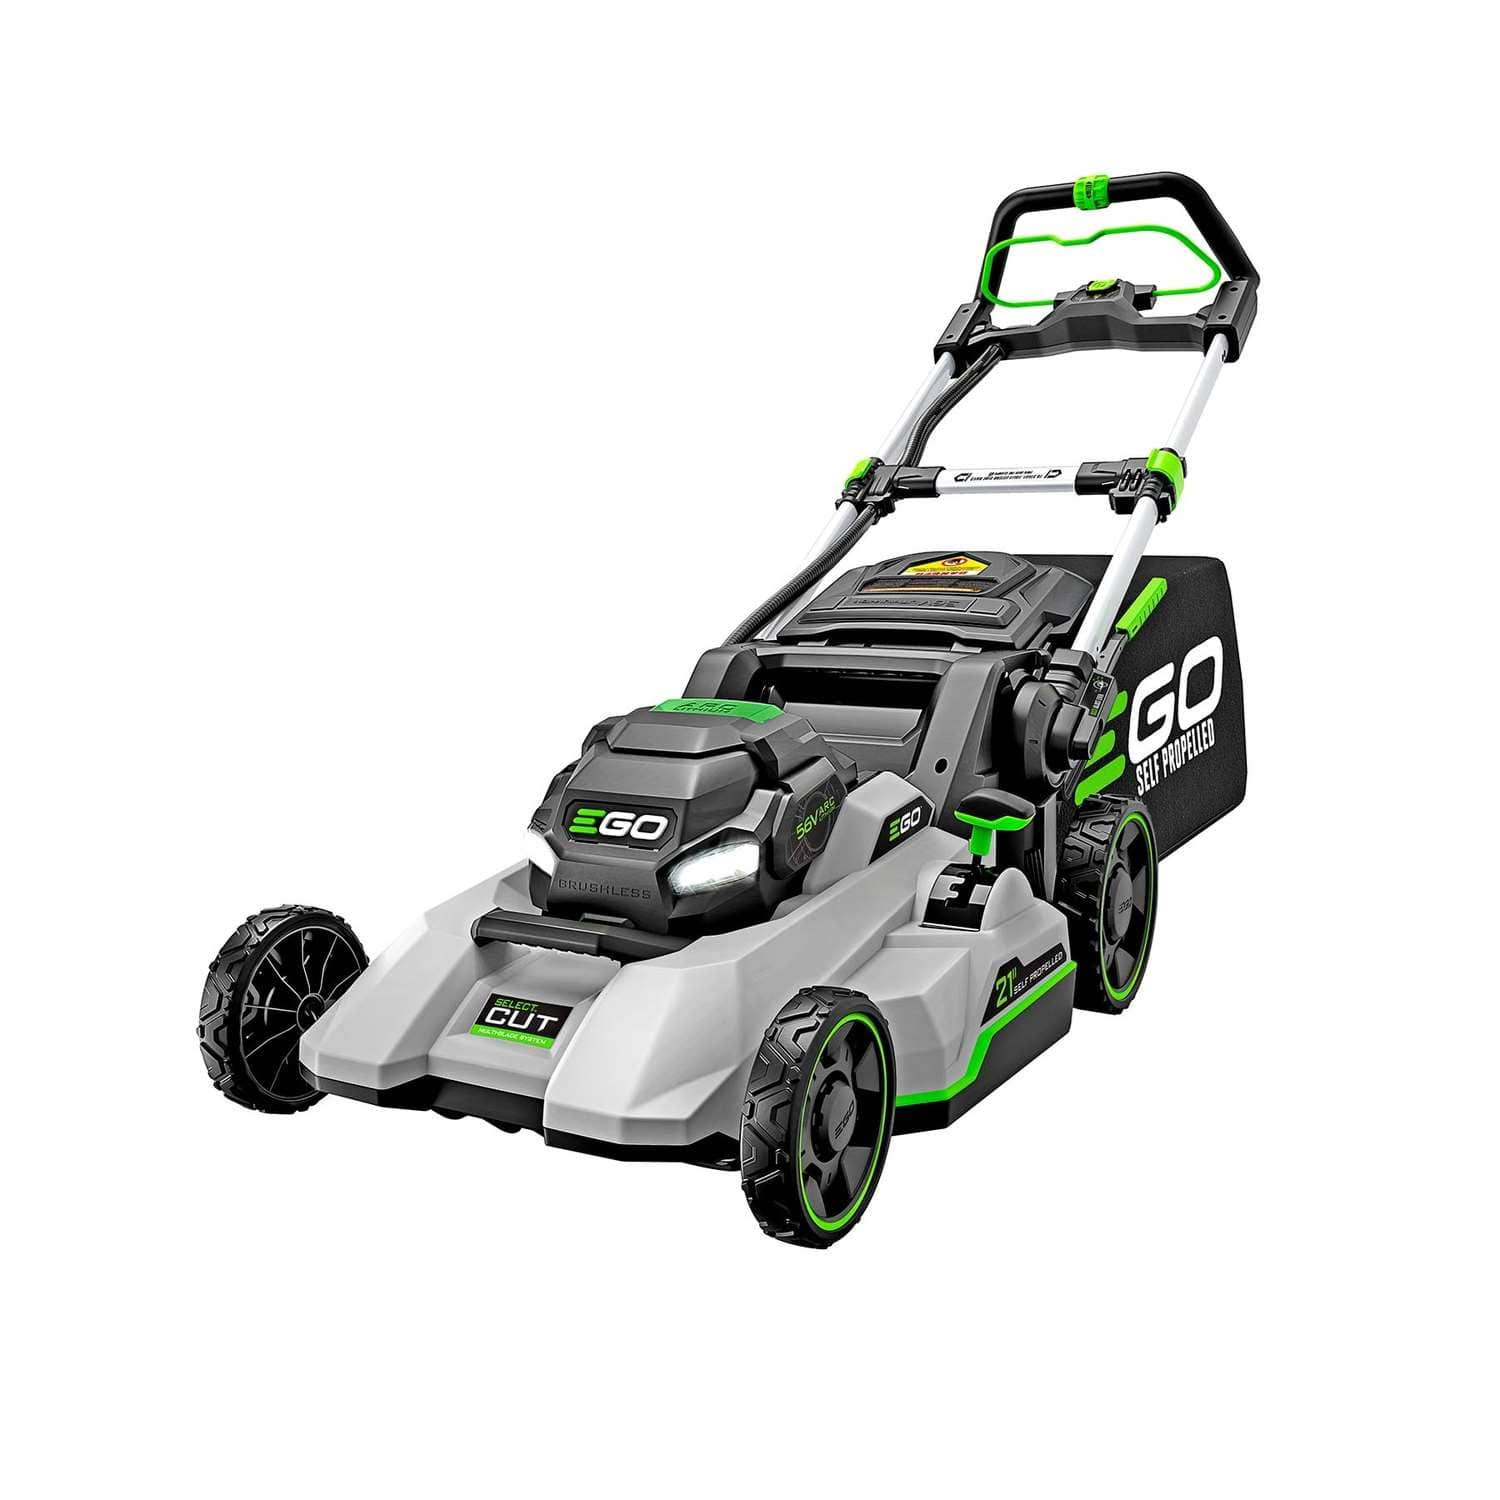 EGO Select Cut 21 in. Self-Propelled Lawn Mower LM2135SP $600